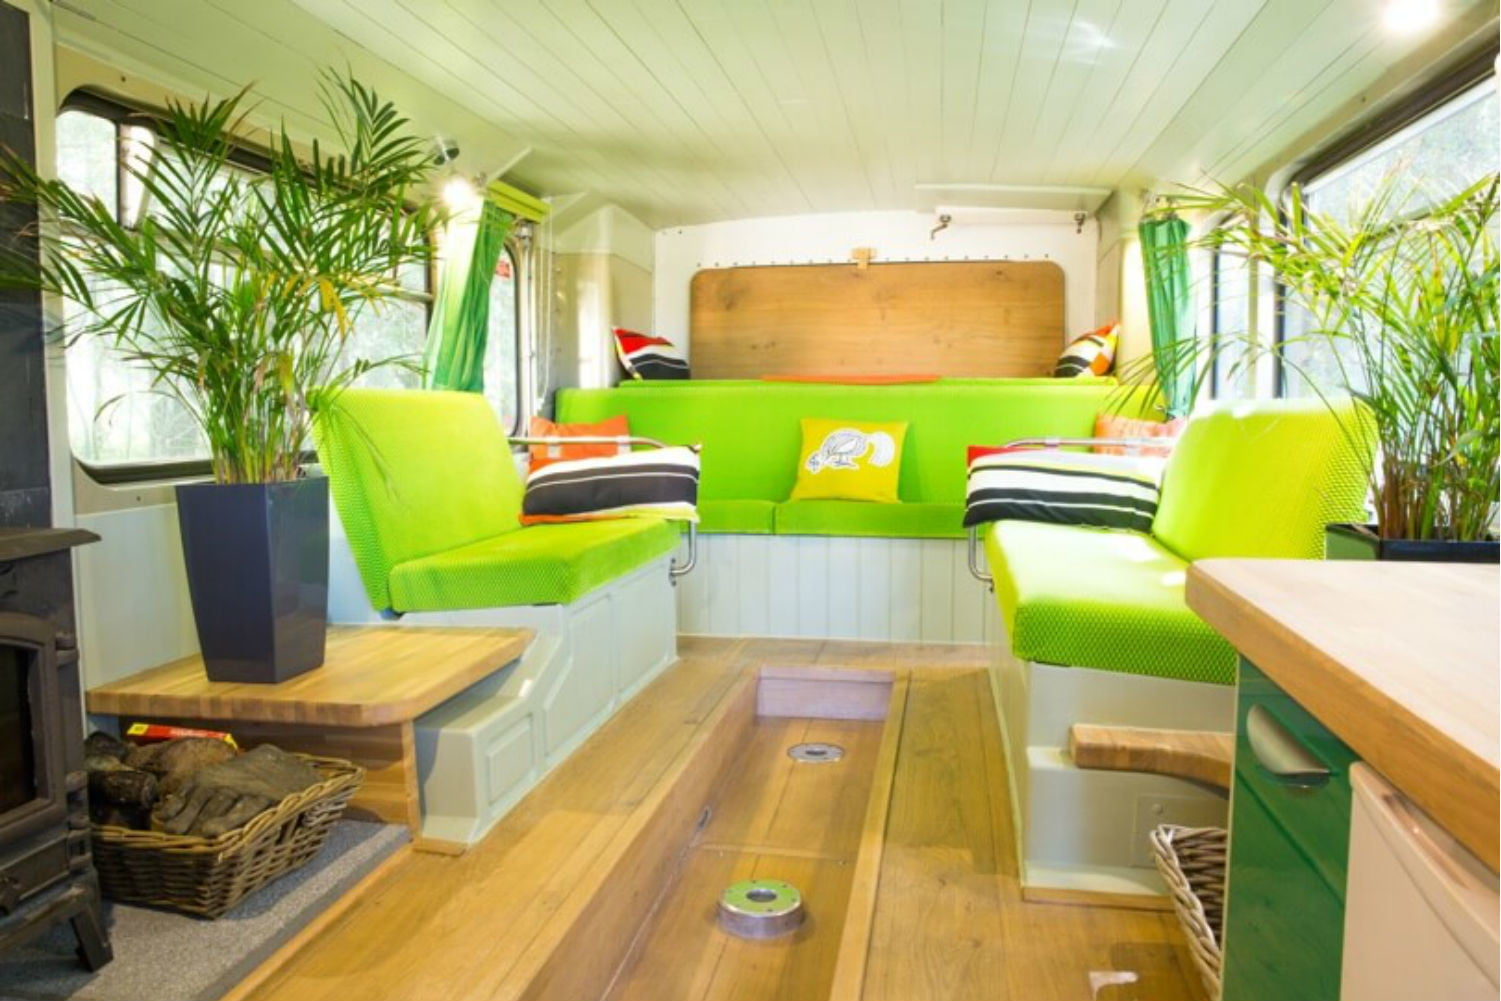 coolest bus to mobile home conversions biggreenbus3